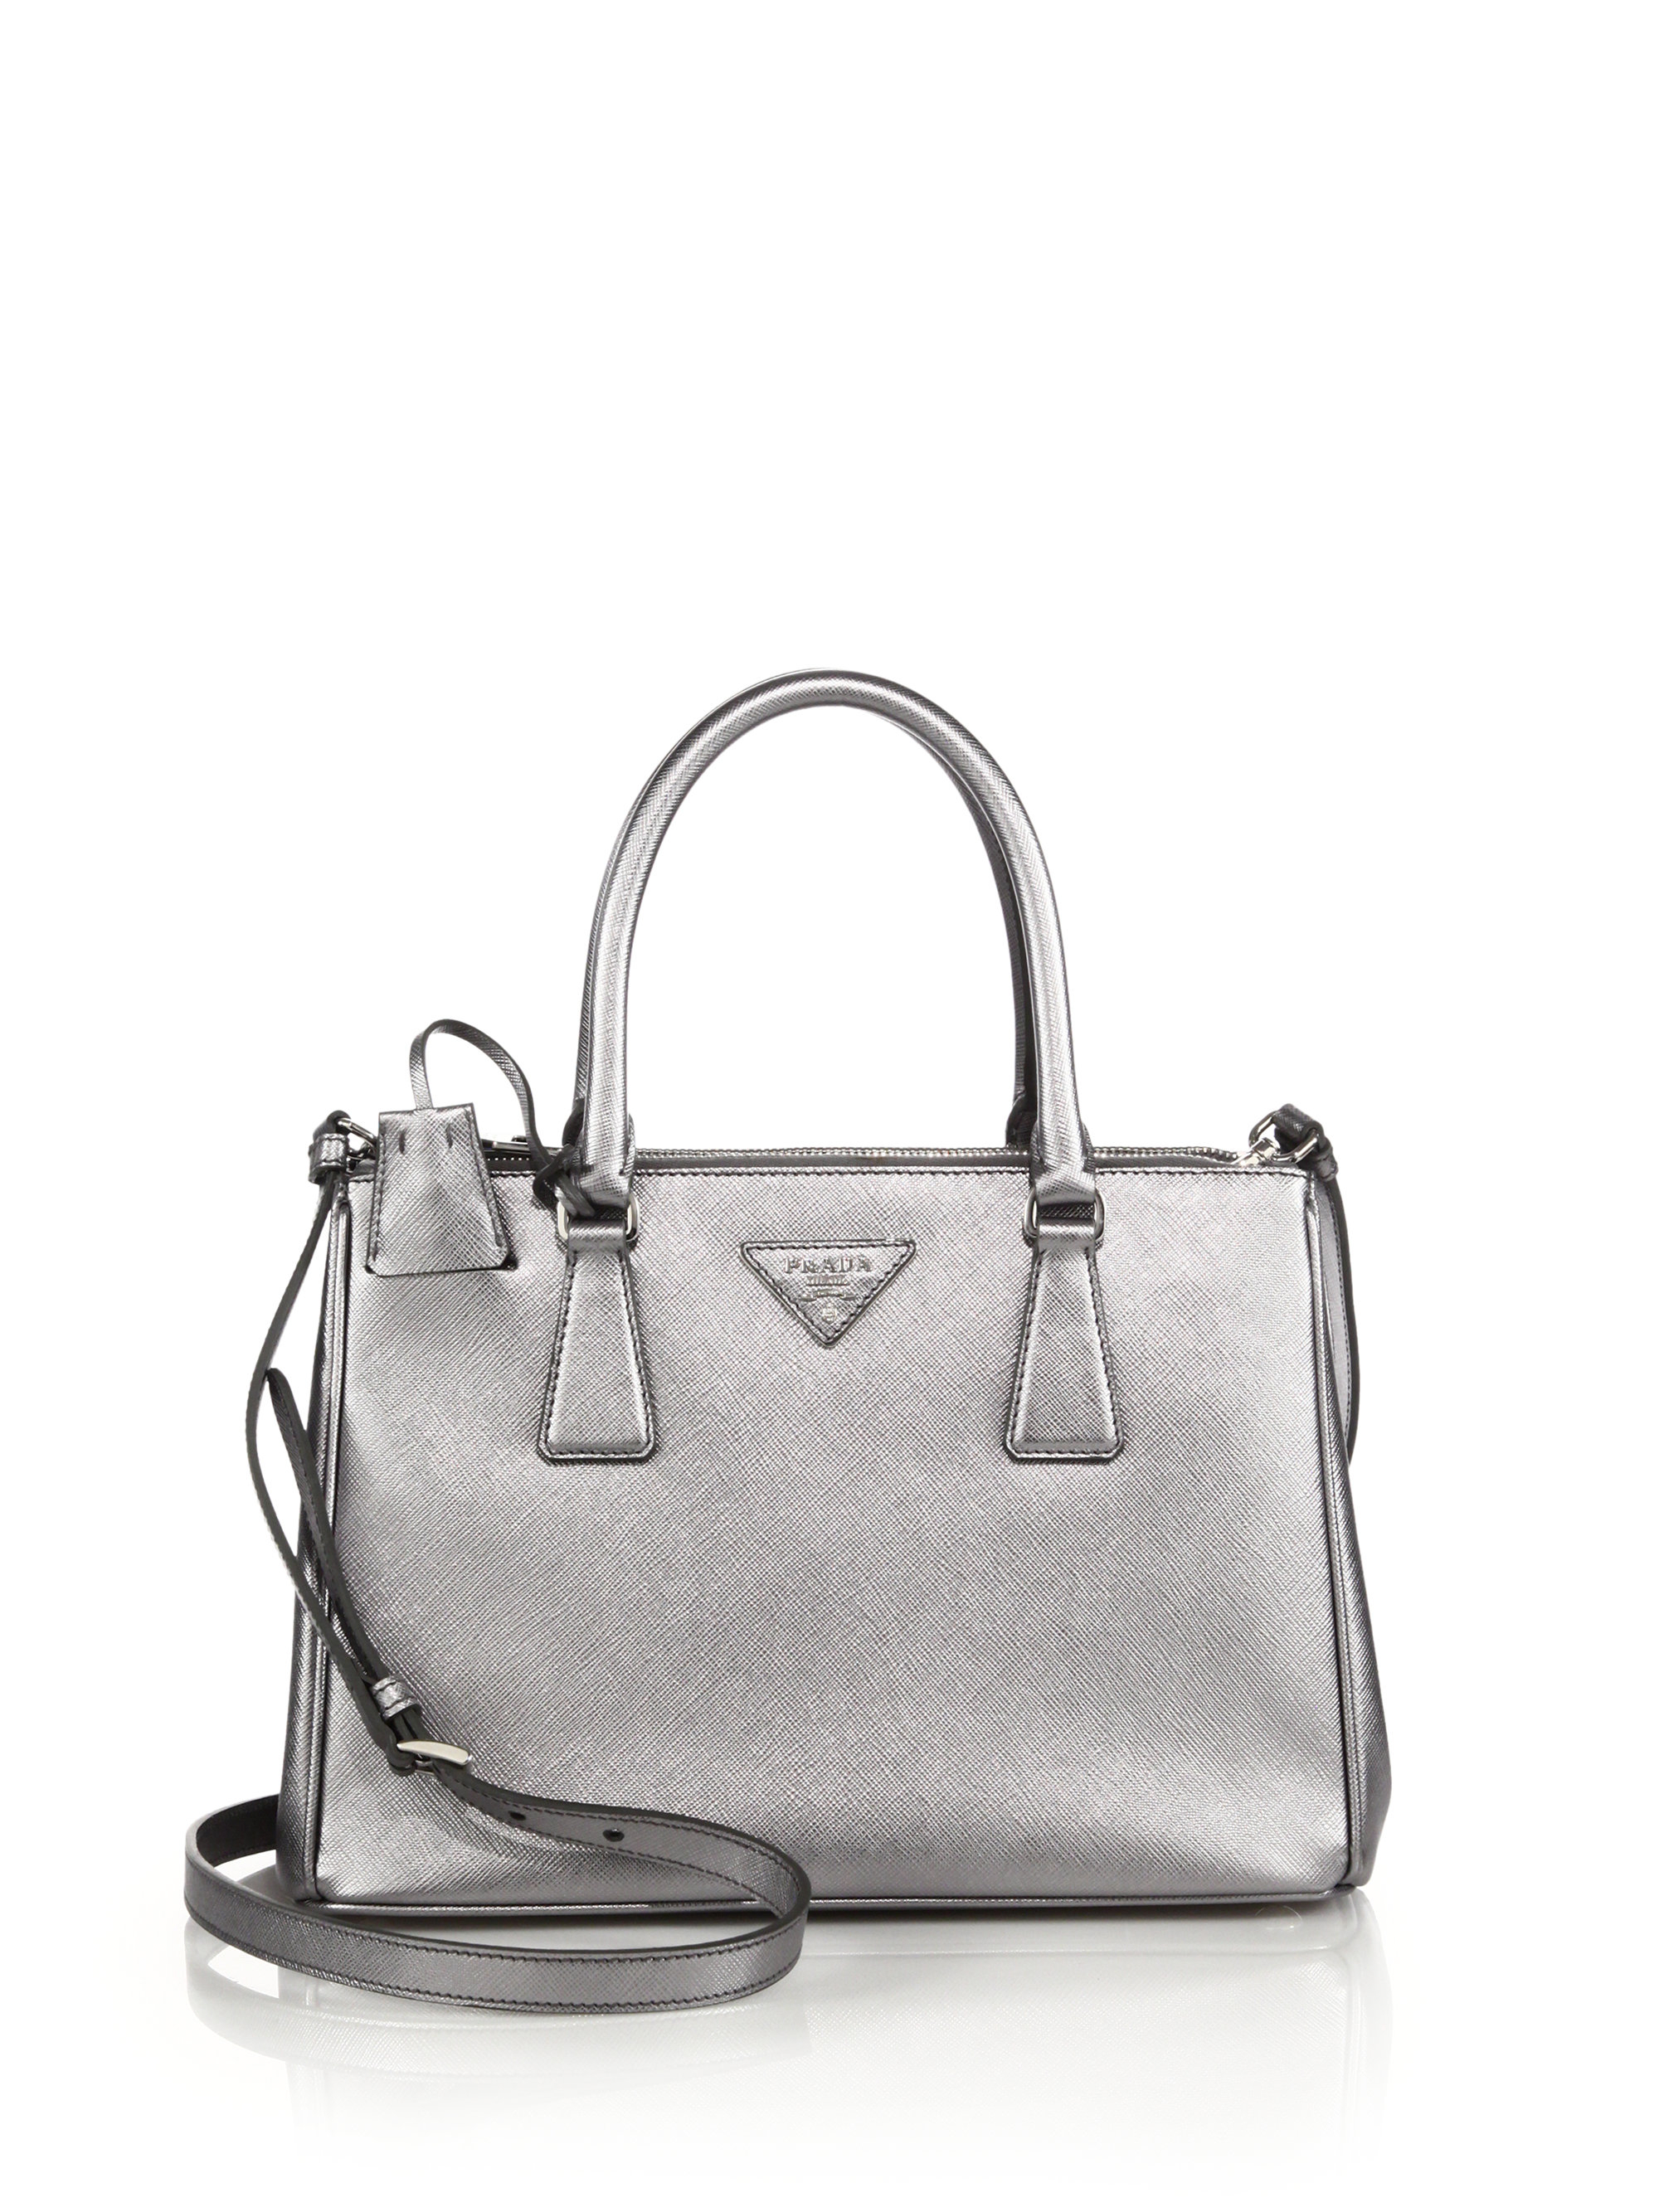 red prada purses - Prada Saffiano Lux Small Metallic Double-zip Tote in Silver (CROMO ...